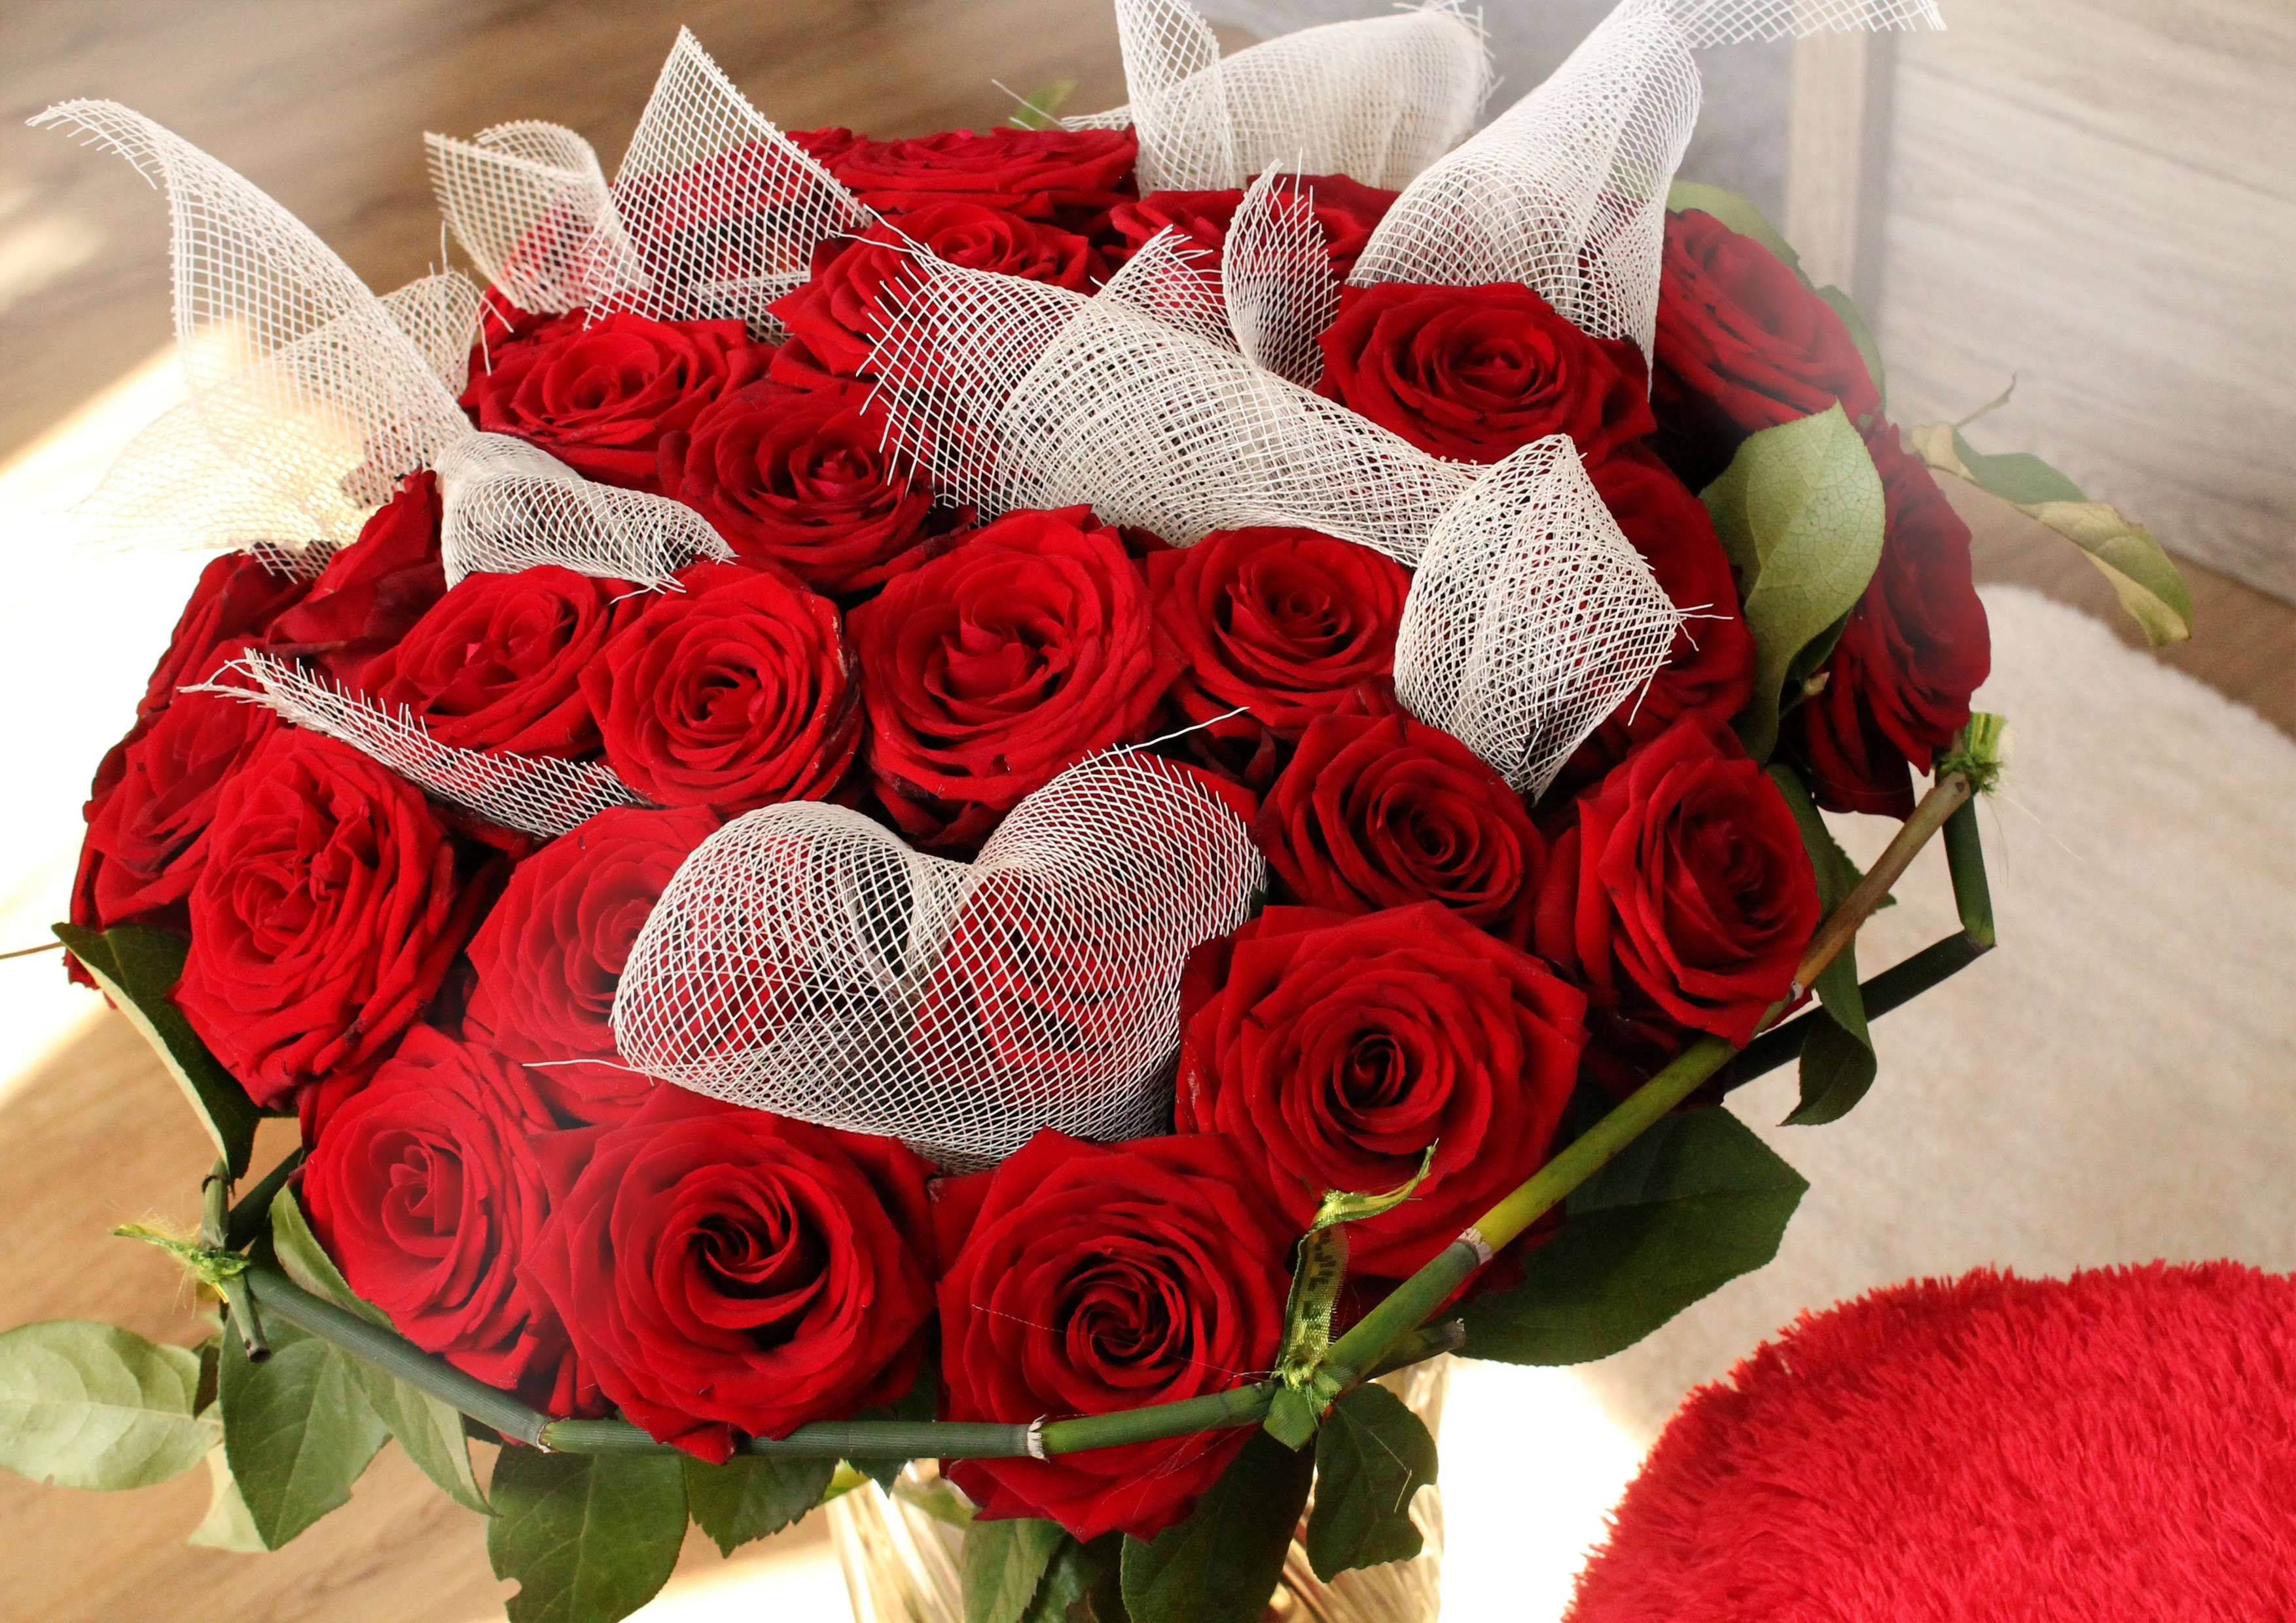 #amorousness #color #feeling #flower #flowers #foliage #love #passion #red #red rose #romance #romantic #rose